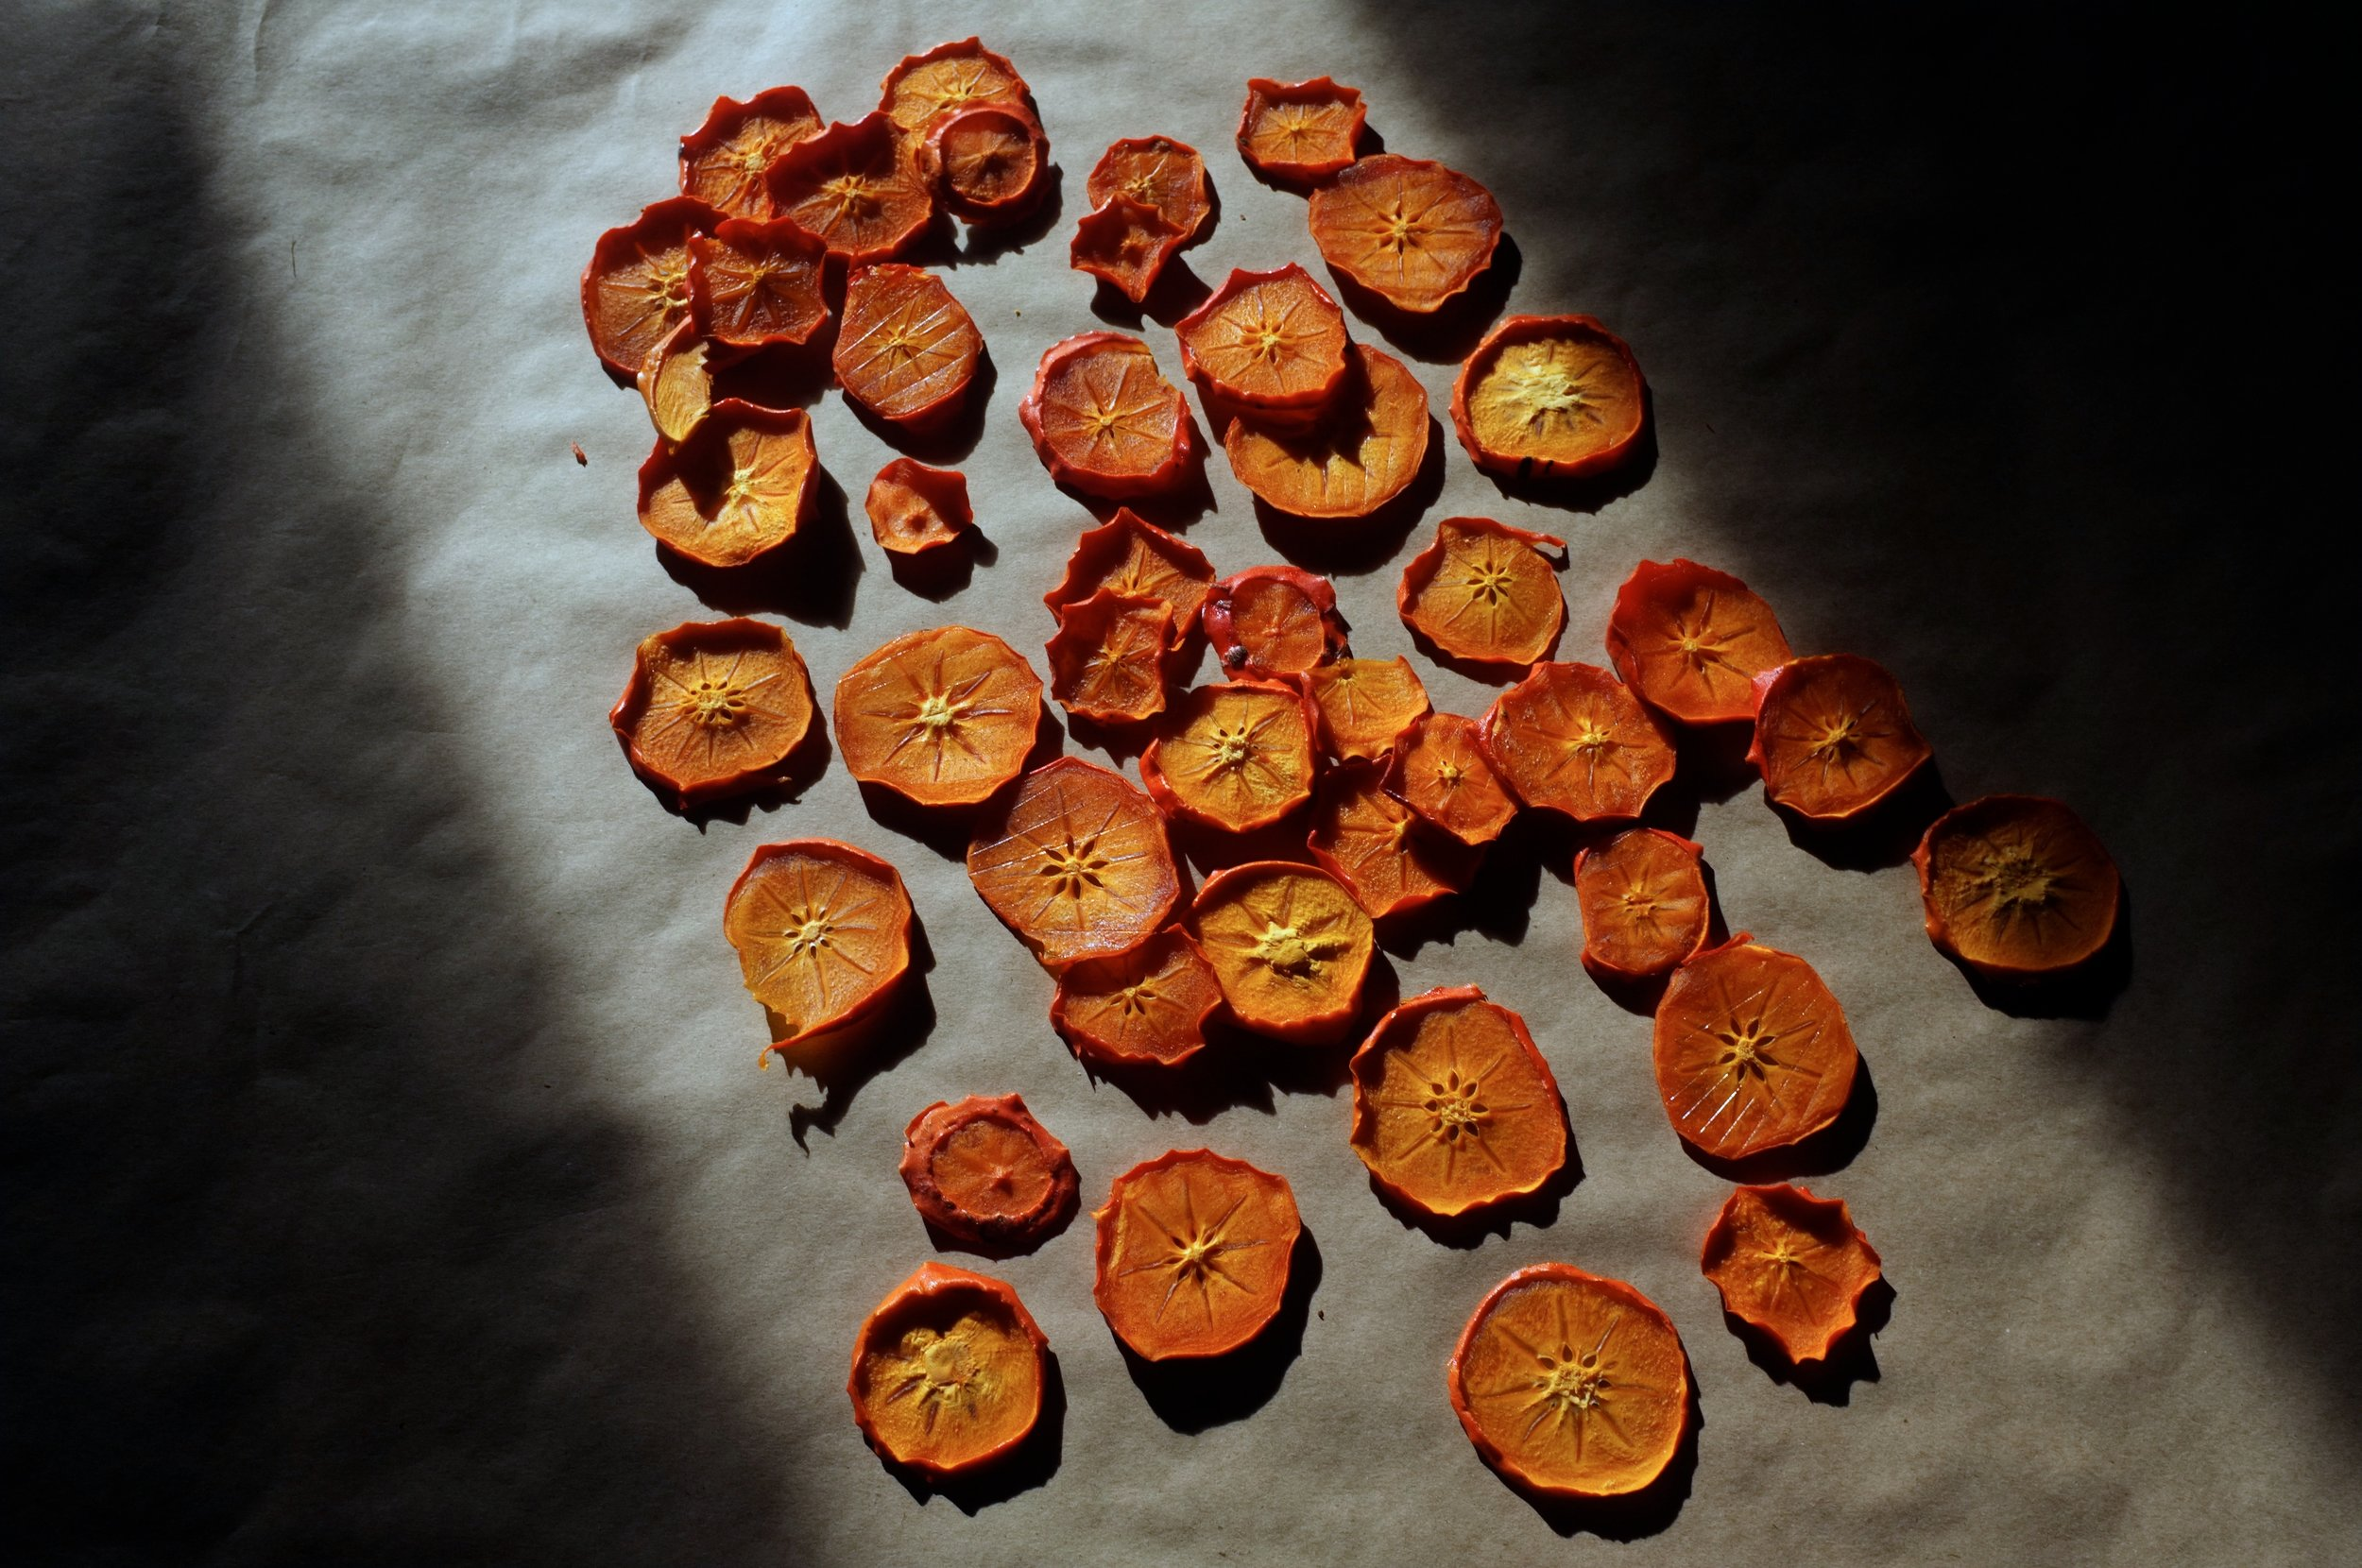 dehydrated persimmons.